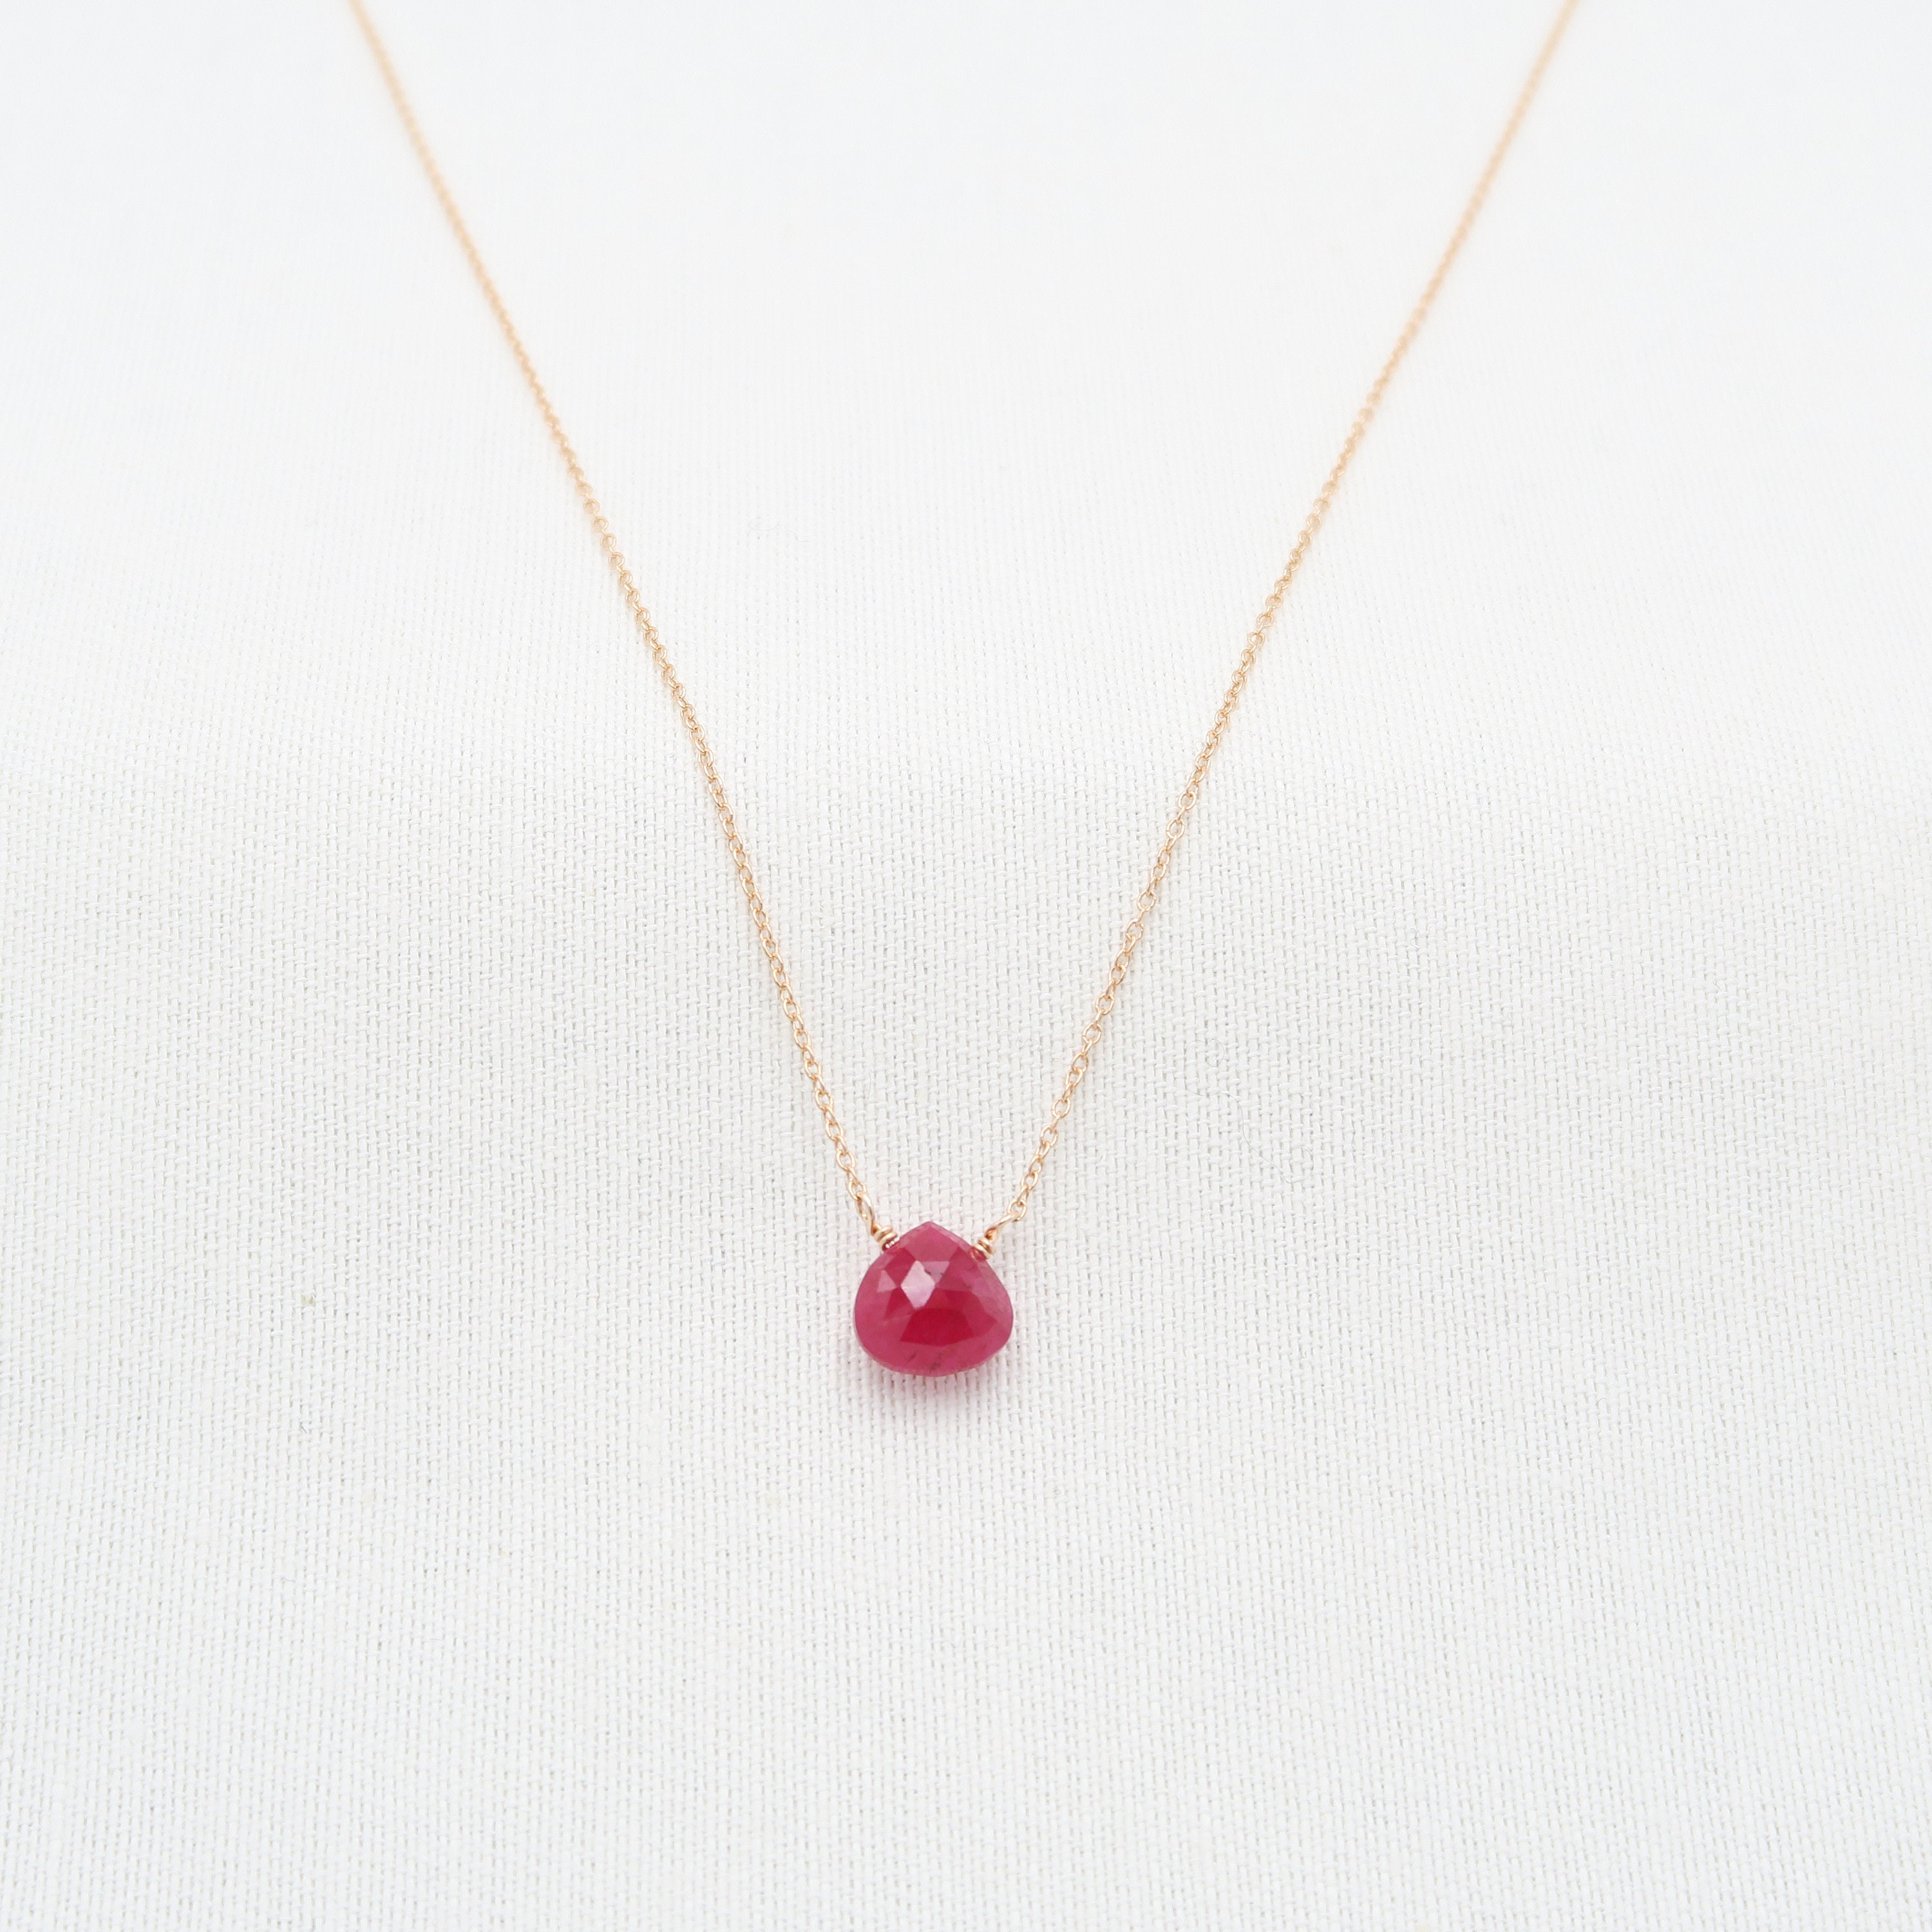 ruby pendant short chain necklace Ruby necklace gold plated chain necklace dainty necklace